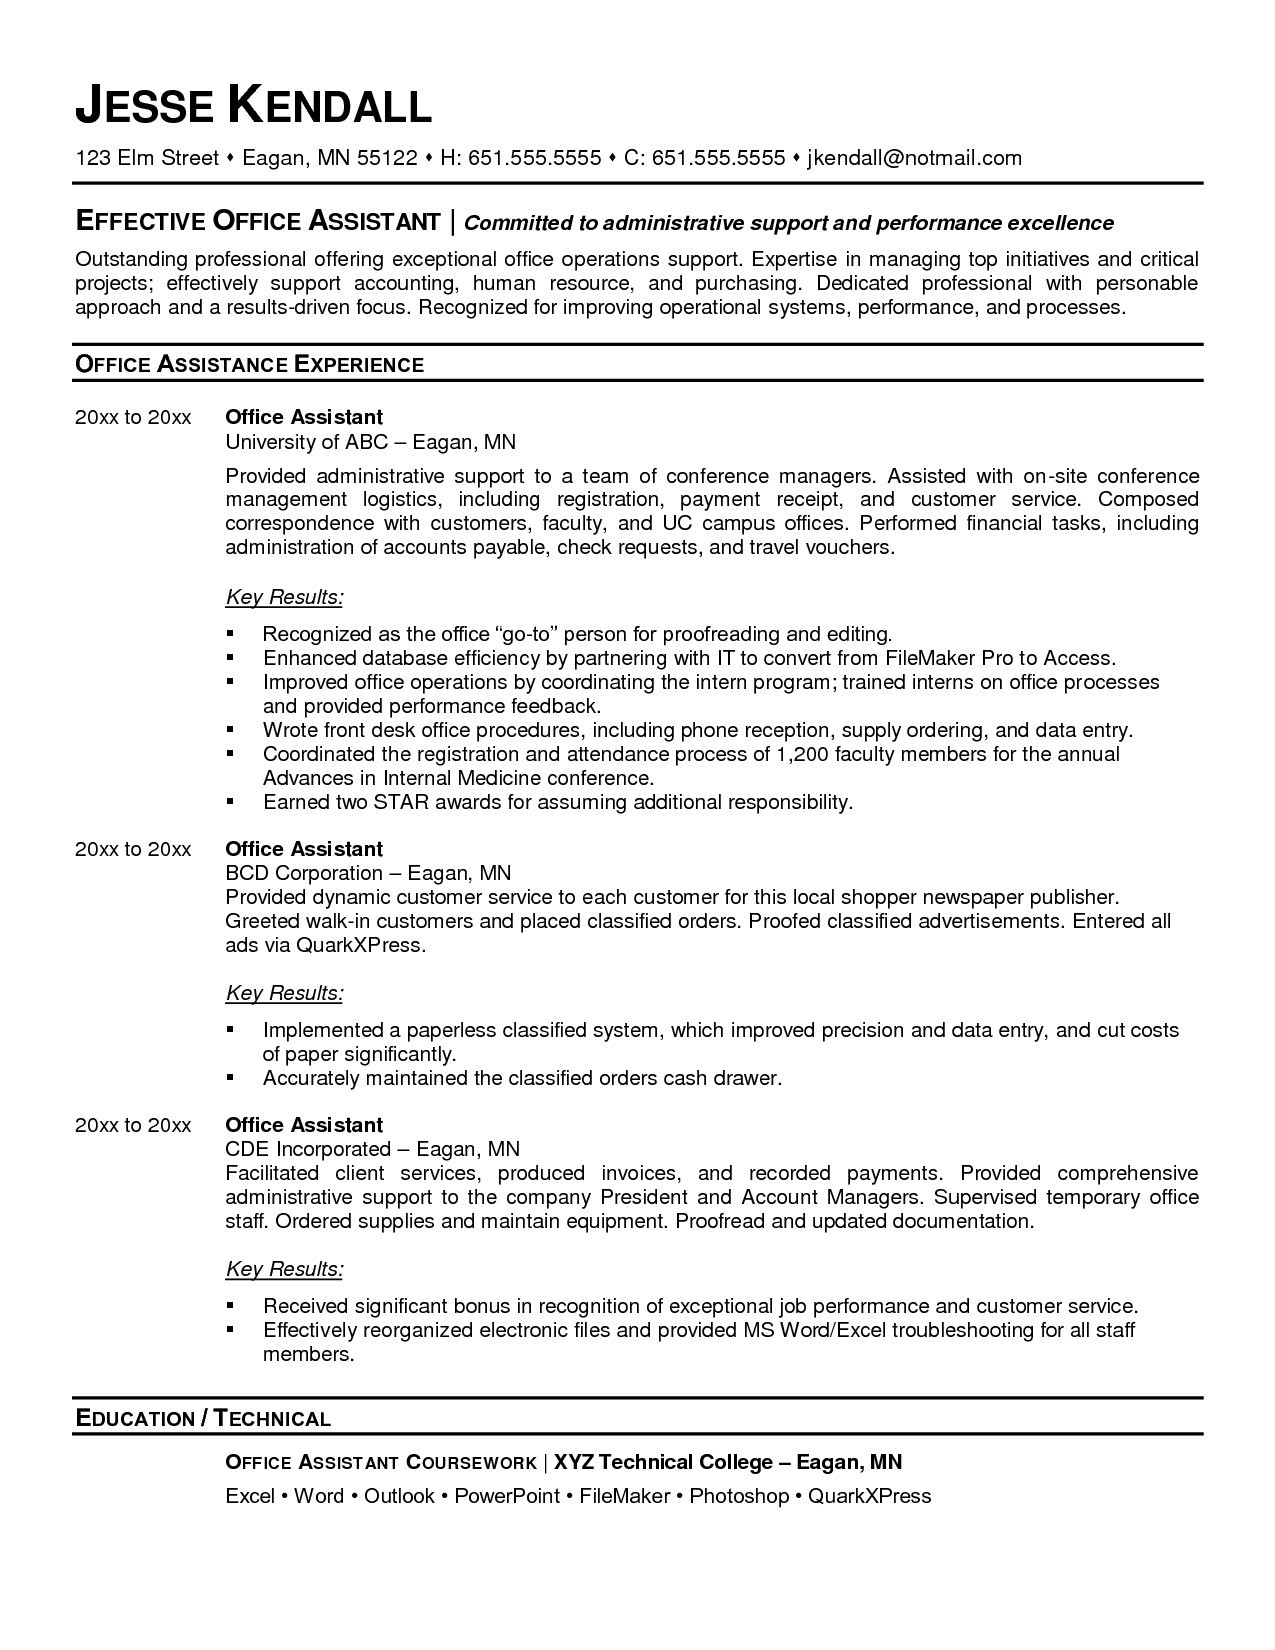 Going Paperless Letter to Customers Template - What is A Resume for A Job Best New Job Advertisement Template